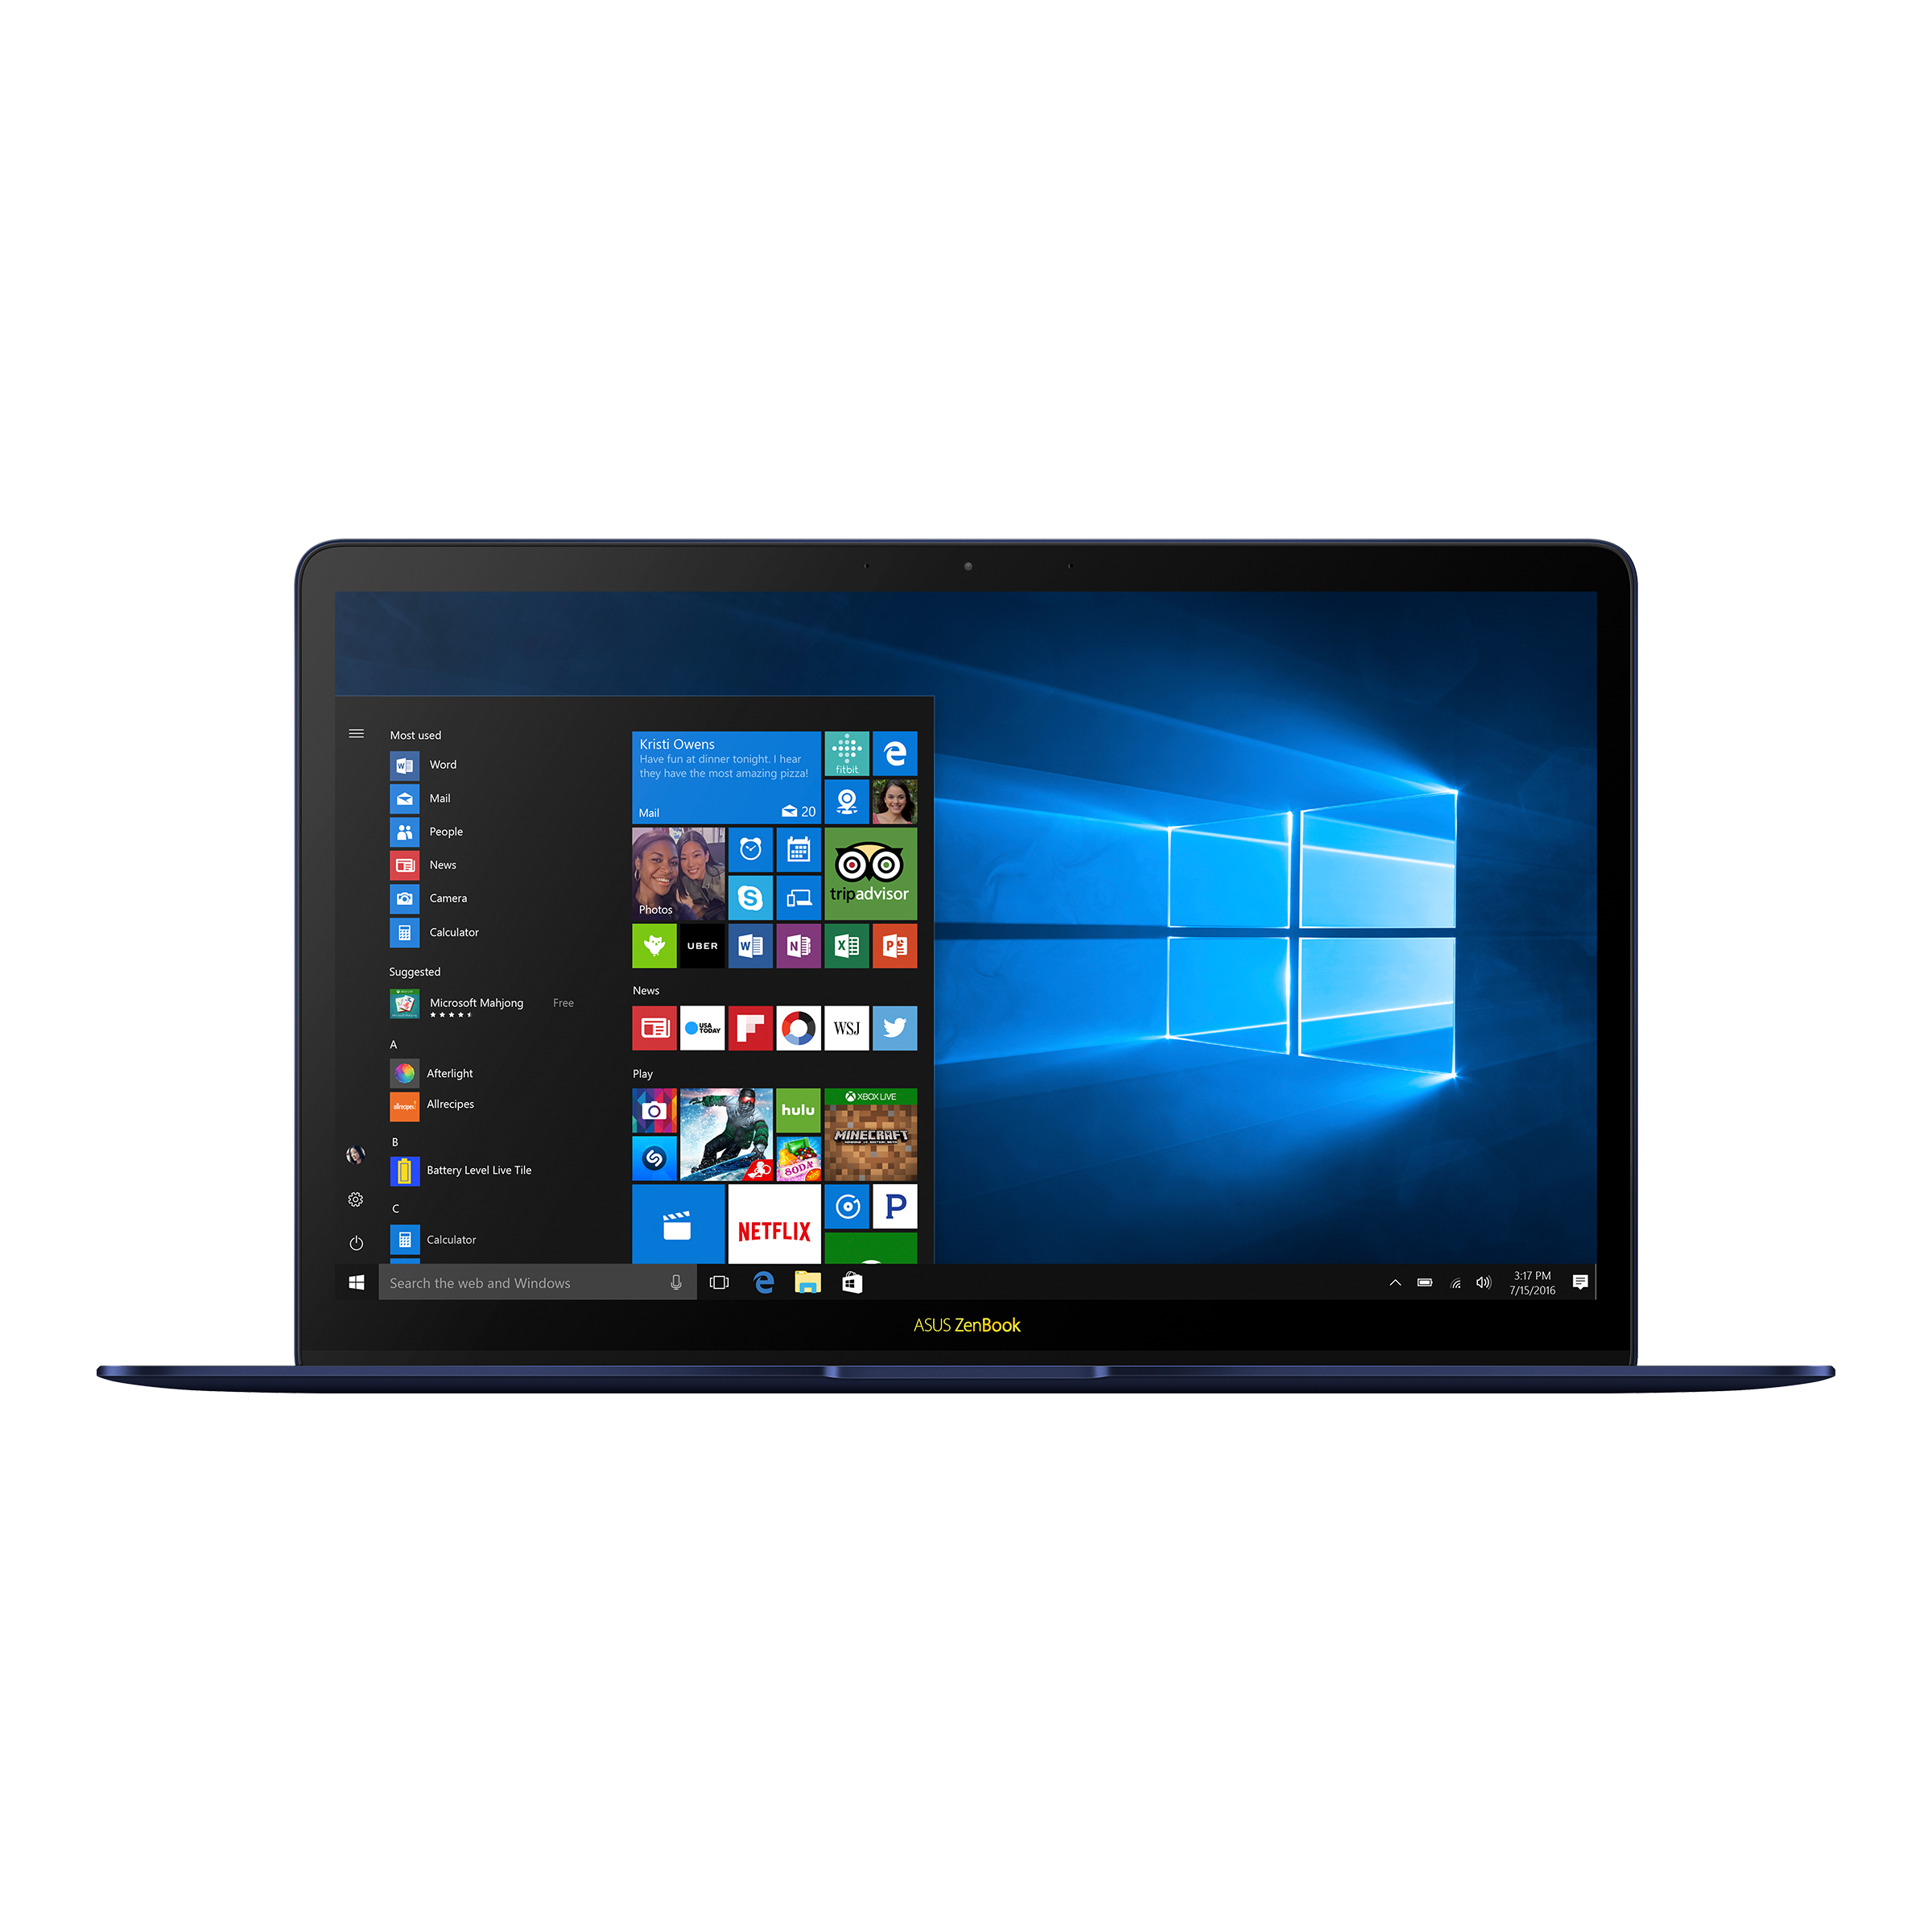 Asus Zenbook 3 Deluxe Ux490 Laptops For Home Asus Indonesia